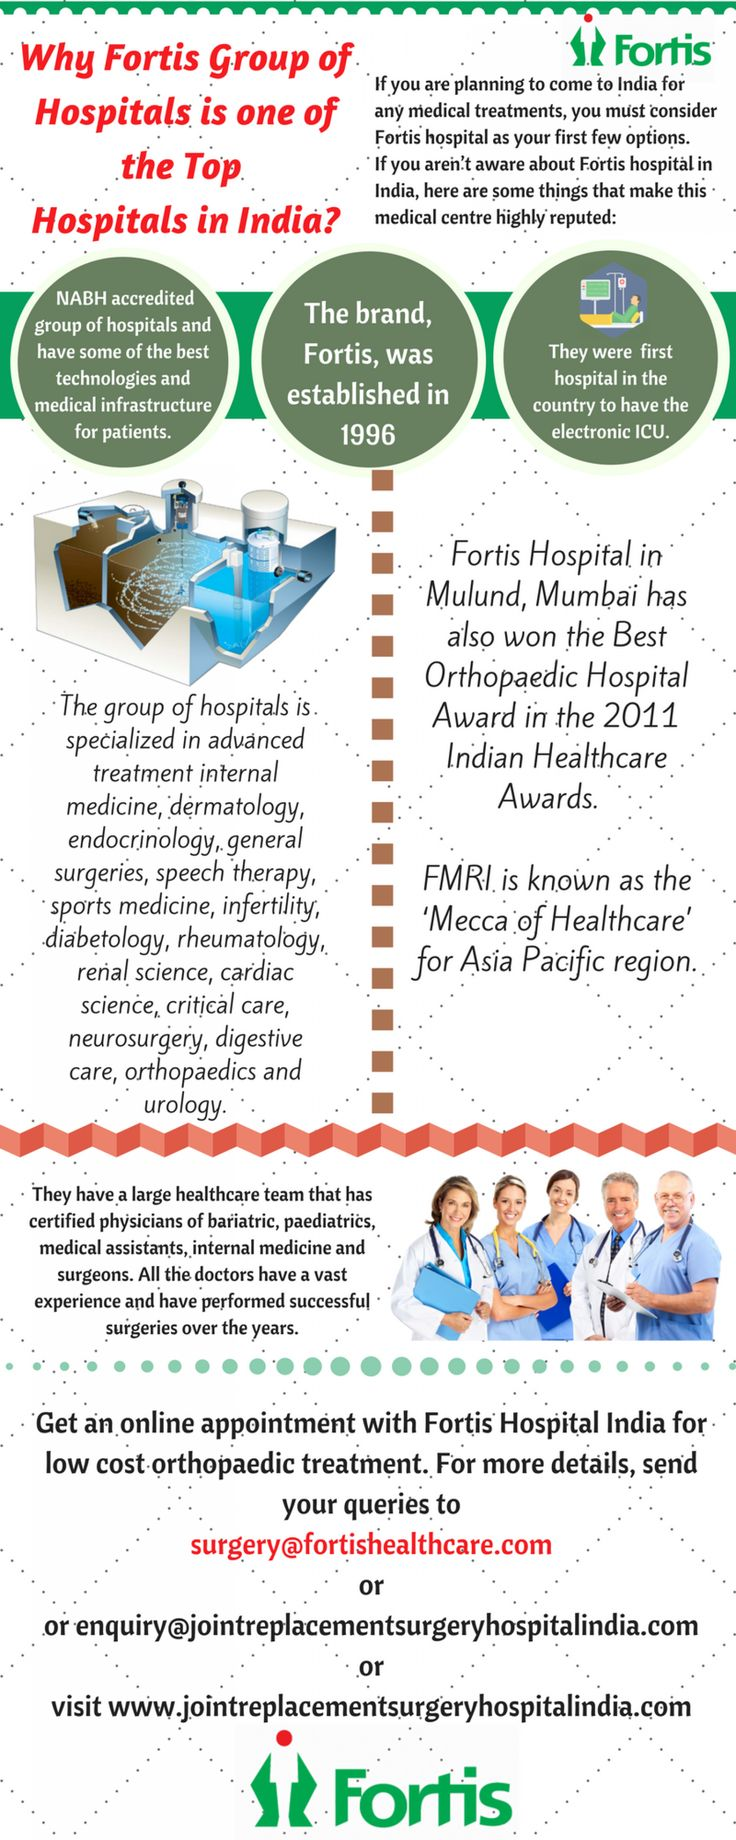 Why Fortis Group of Hospitals is one of the Top Hospitals in India?